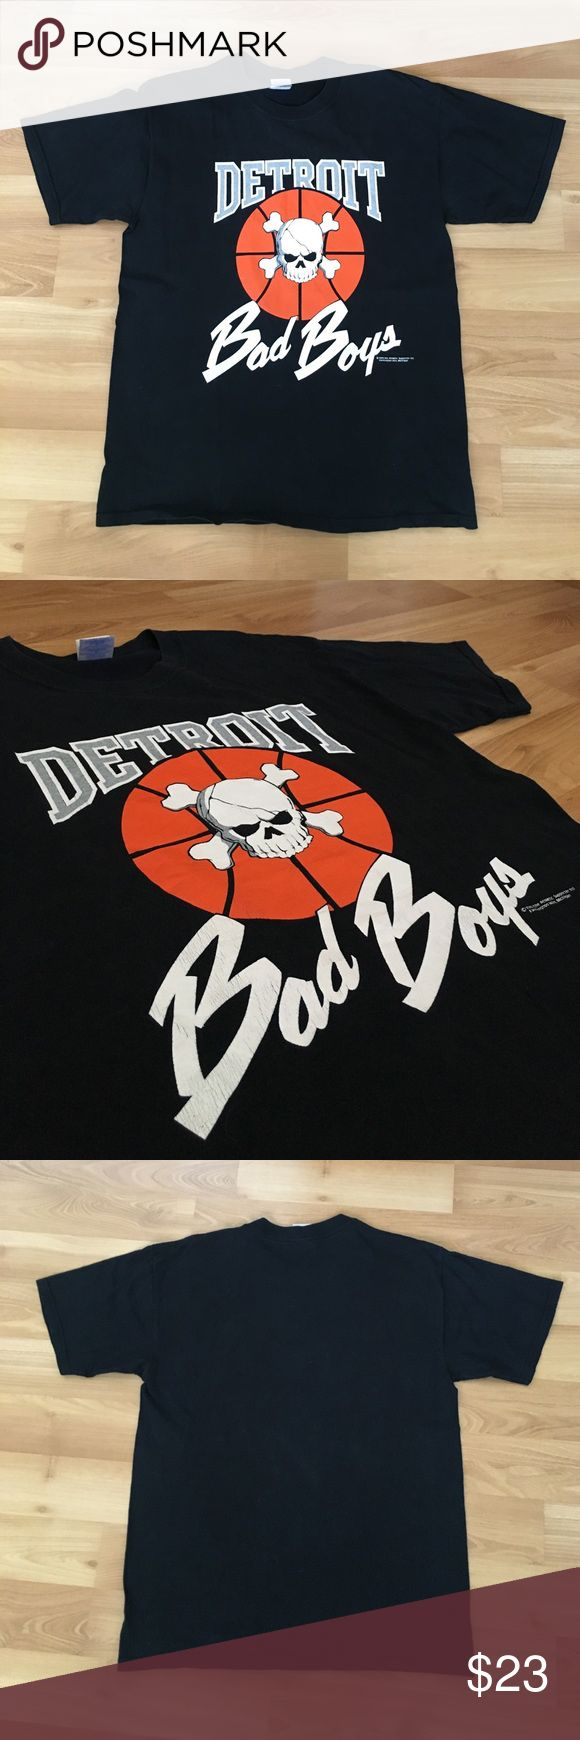 Vintage Detroit Bad Boys Pistons Skull Shirt Sz LG Vintage Detroit bad boys Pistons size large NBA skull and bones t shirt. It's a black shirt with an orange basketball and grey skull and bones. This is a highly rare shirt from 1988 that barely shows any signs of wear, the emblems are slightly cracked due to being nearly 30 years old. Other then that, zero stains. Gildan Shirts Tees - Short Sleeve